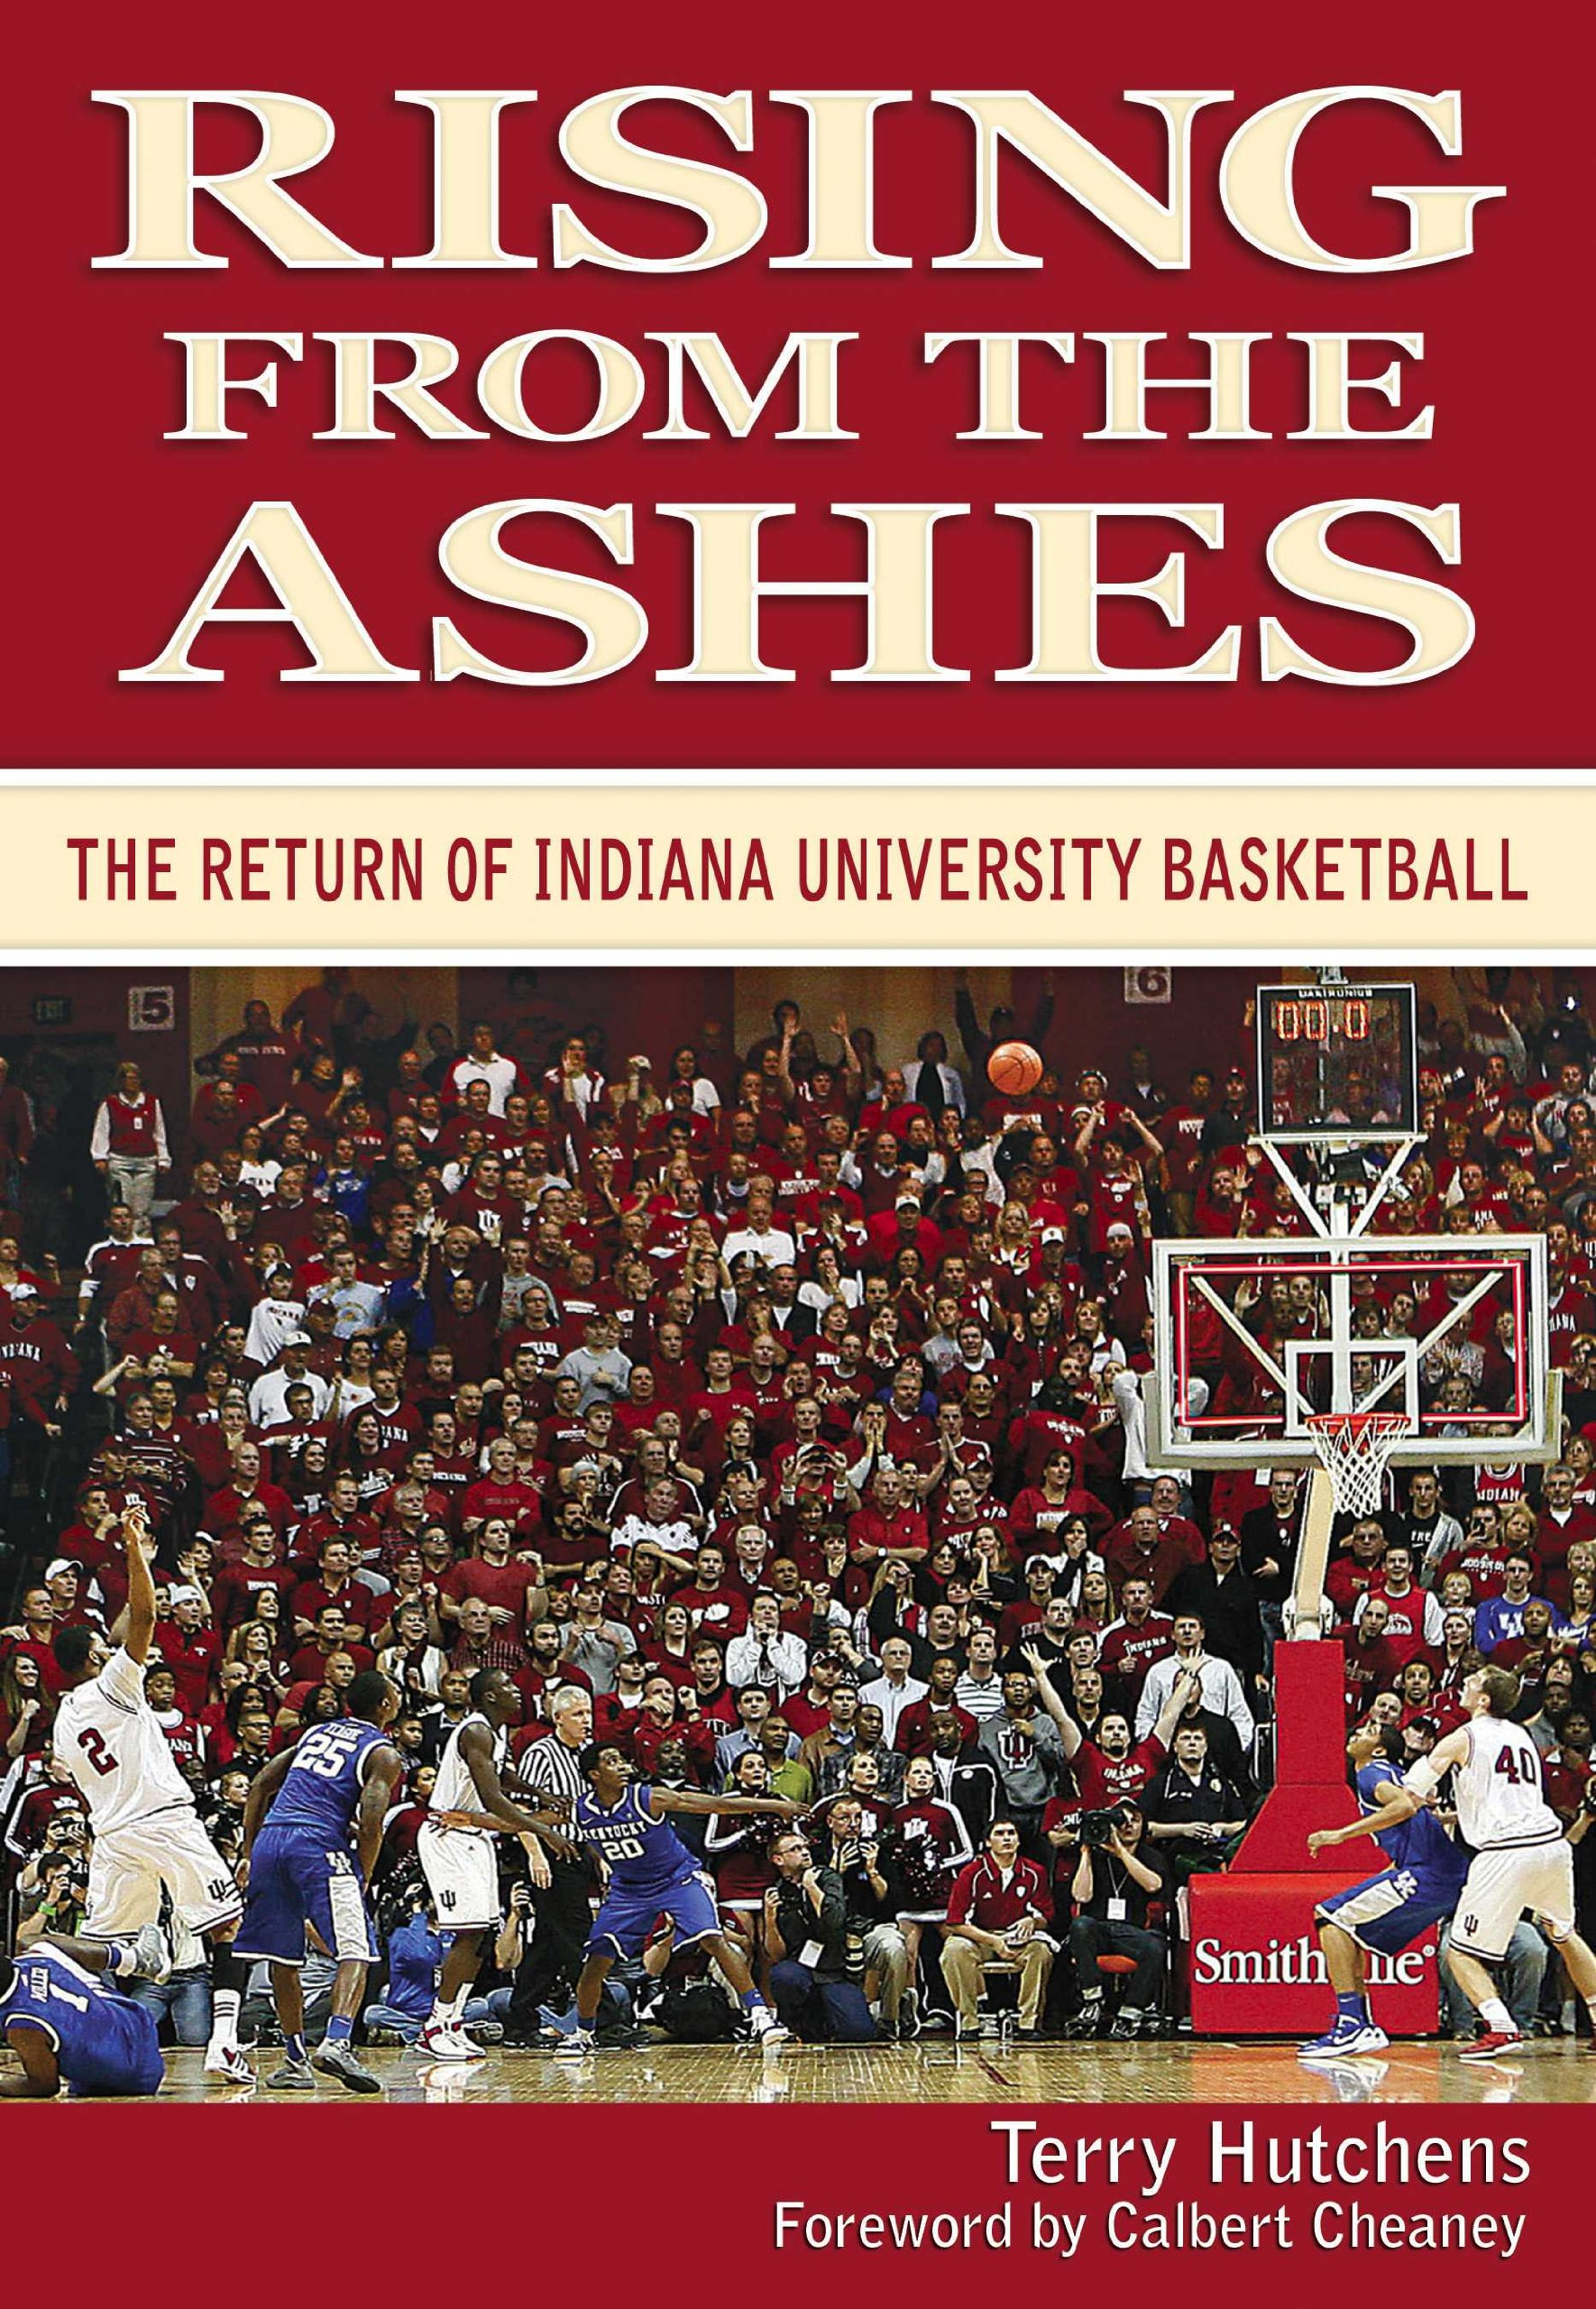 Rising From the Ashes: The Return of Indiana University Basketball